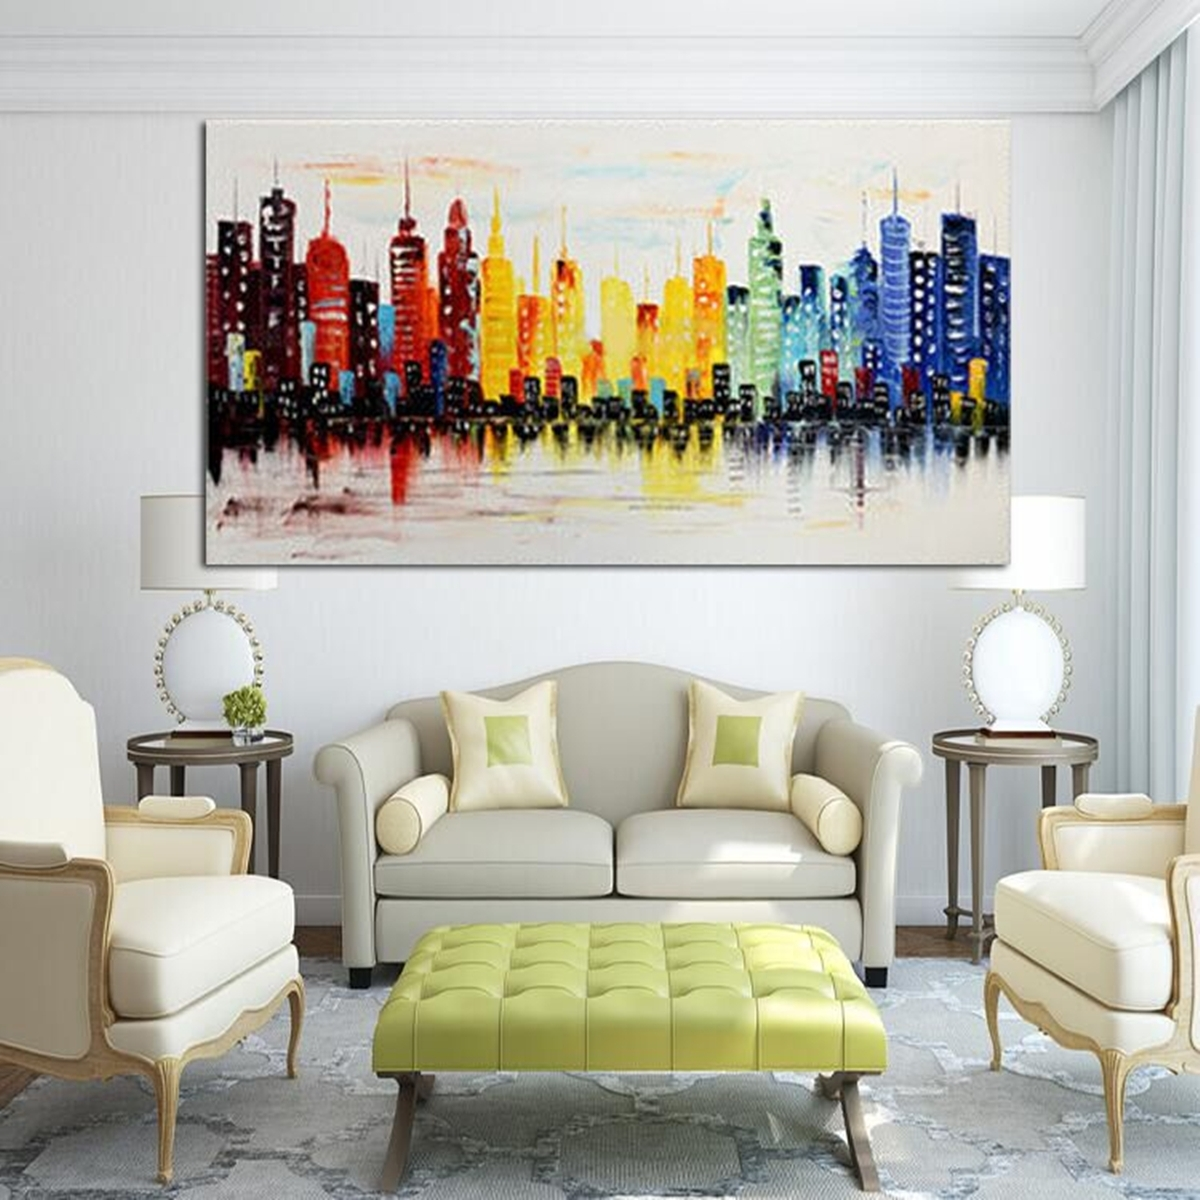 120x60cm Modern City Canvas Abstract Painting Print Living Room Art Throughout Most Recently Released Living Room Painting Wall Art (View 11 of 20)